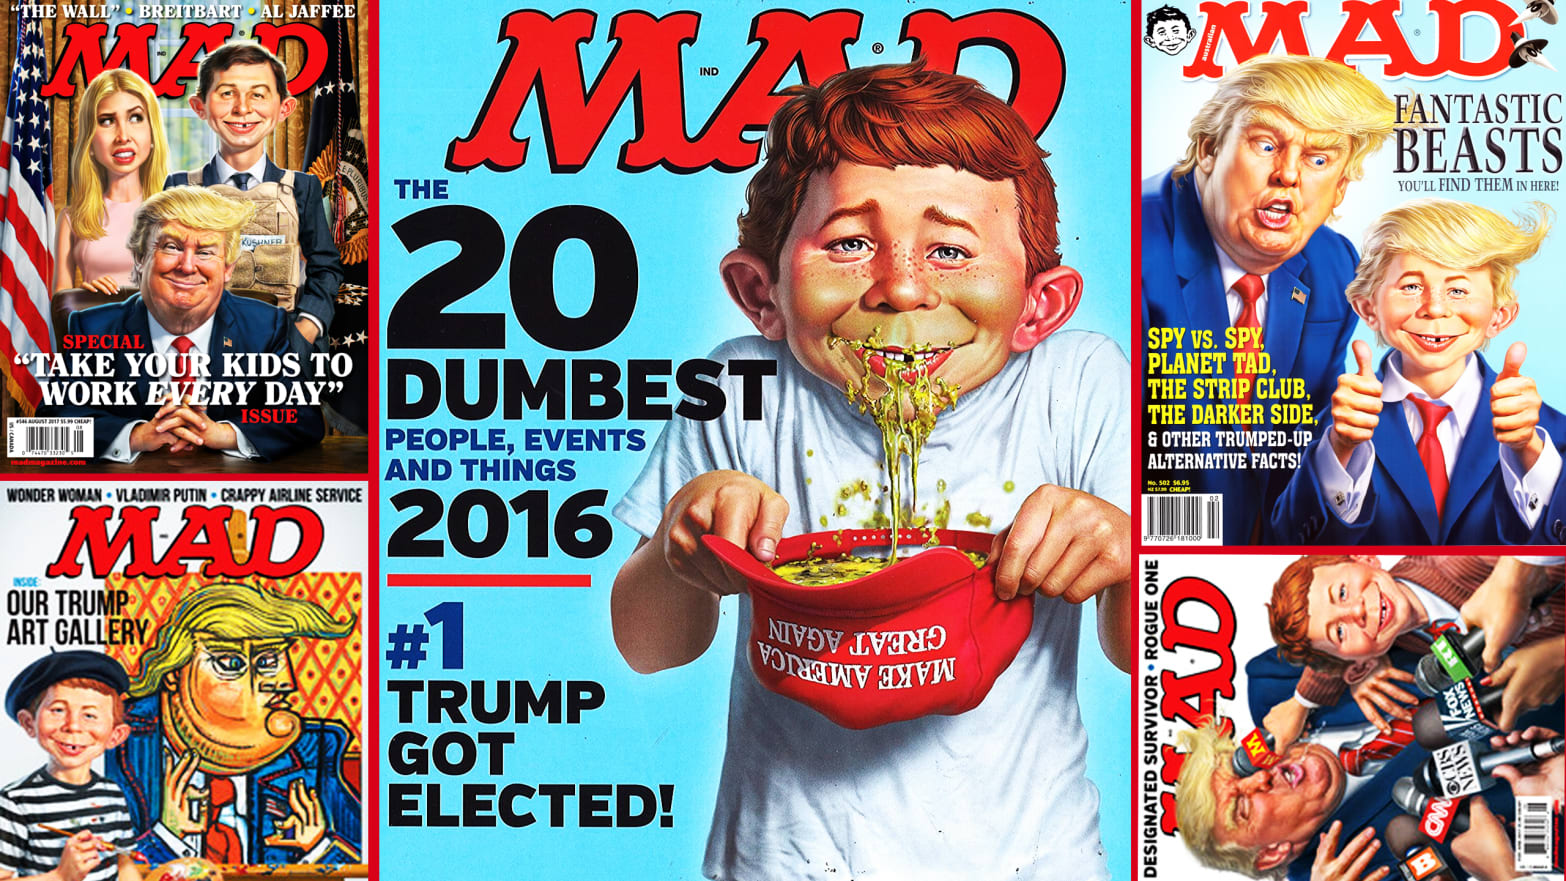 MAD Magazine Taught Us to Laugh but Now We Laugh At It